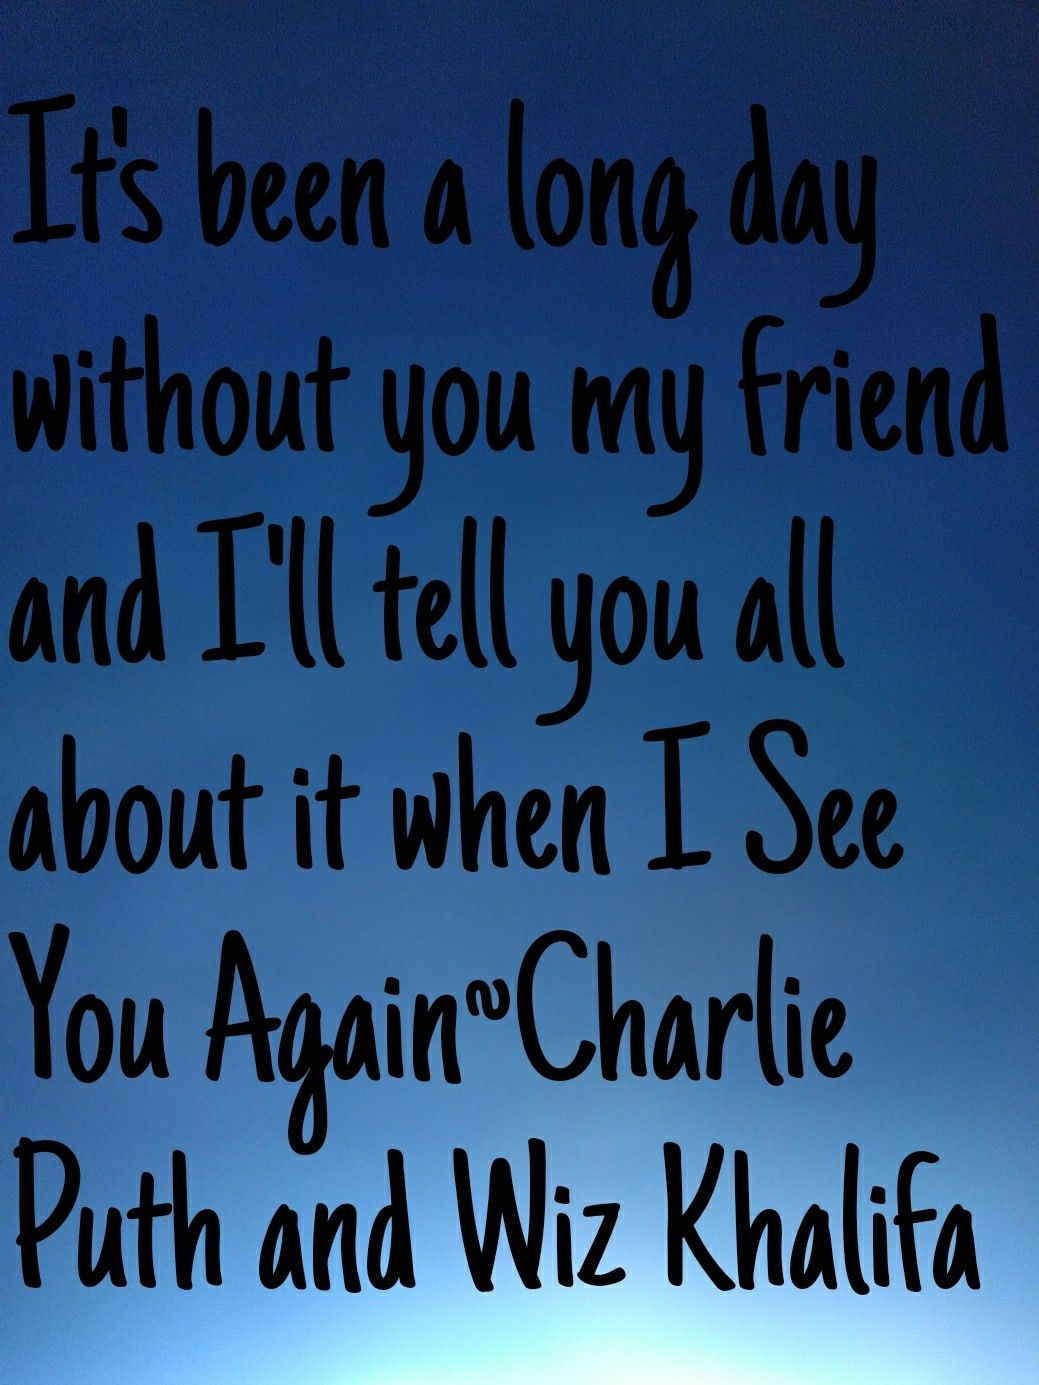 When I See You Again If you like Charlie put comment